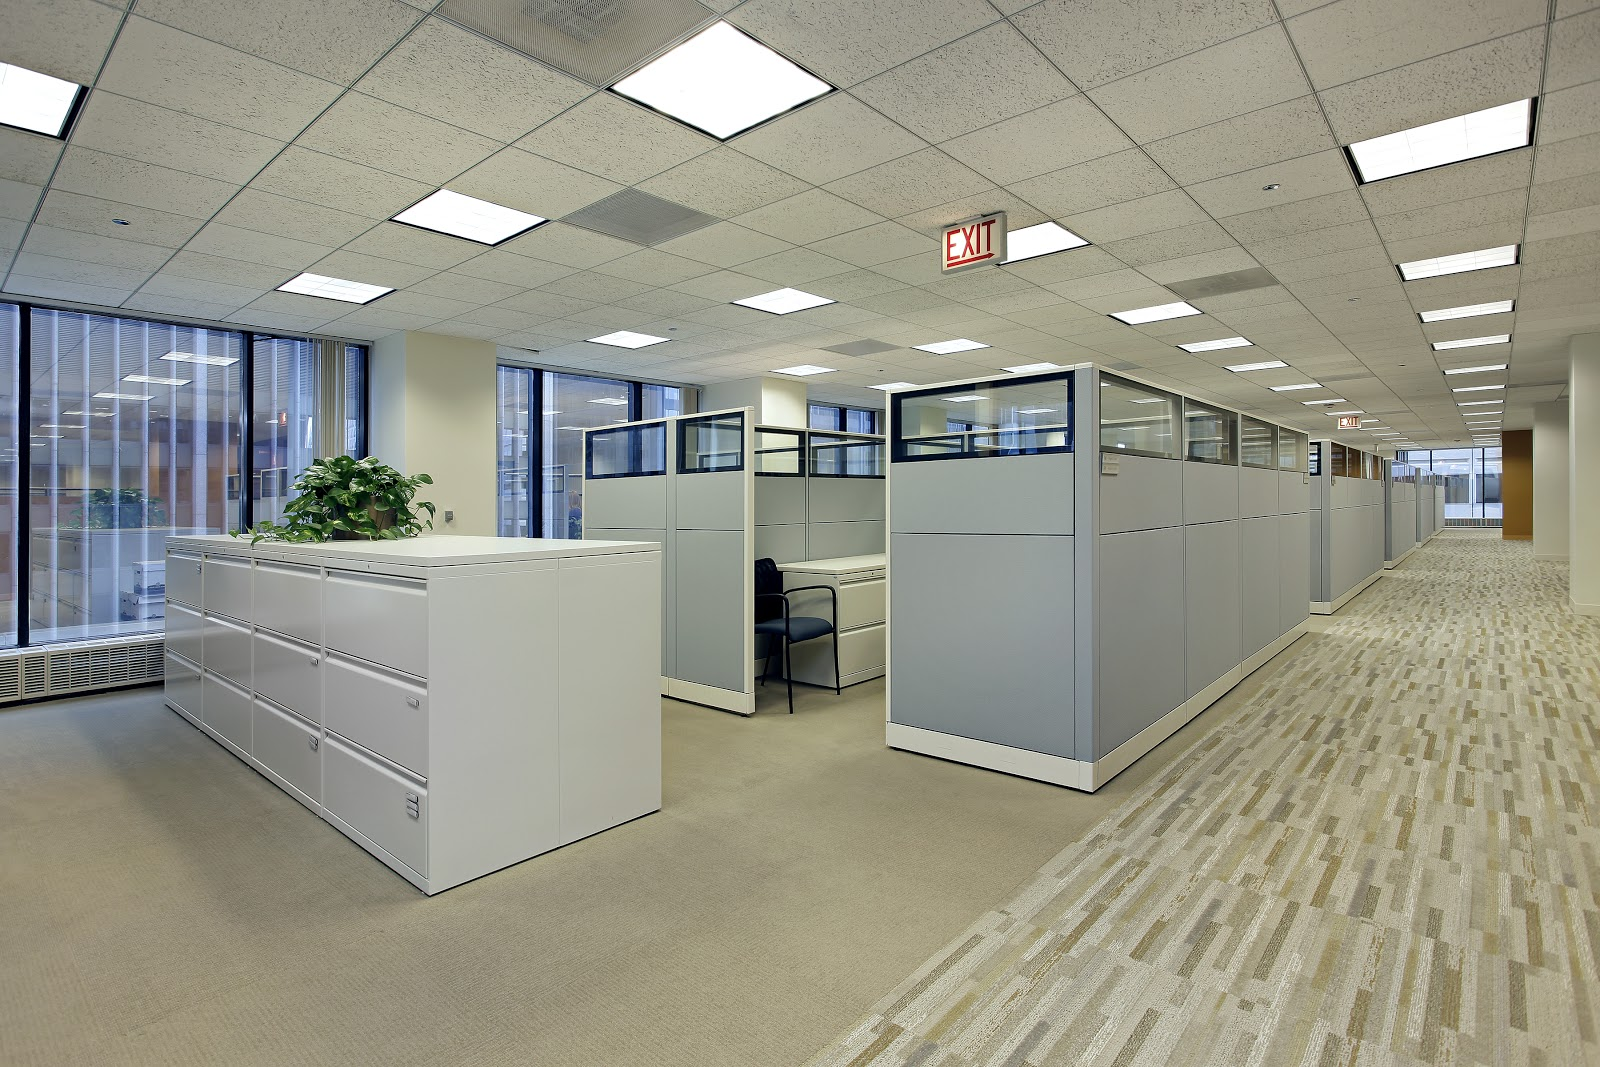 Office cubicles with high walls